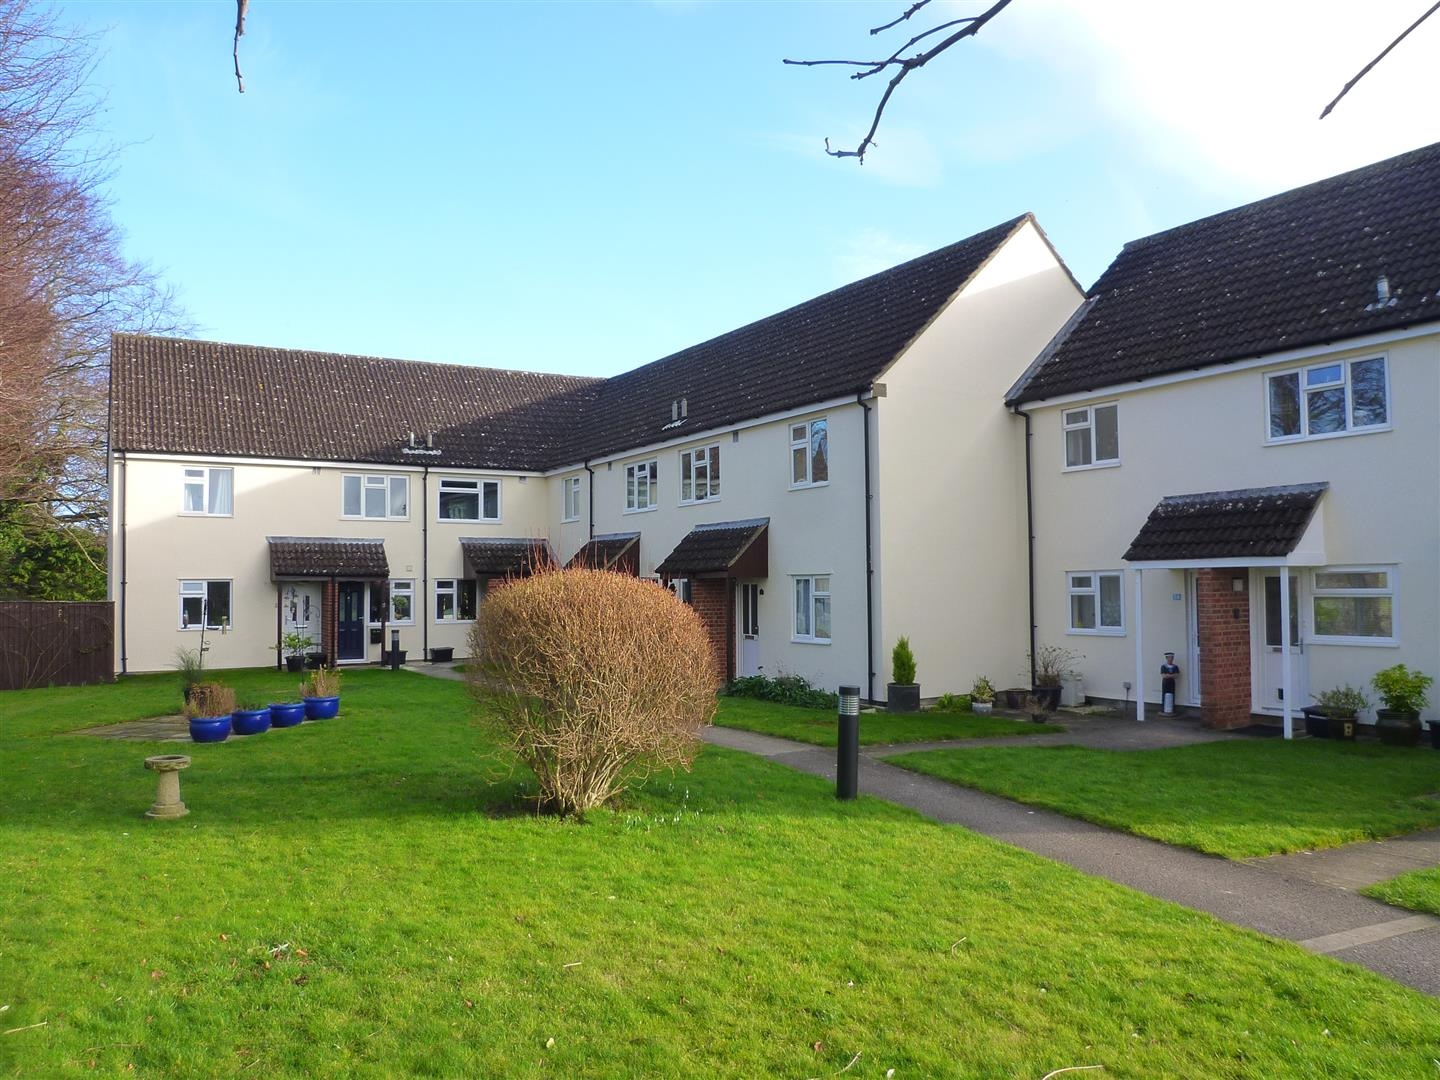 2 Bedrooms Flat for sale in Edington, Westbury